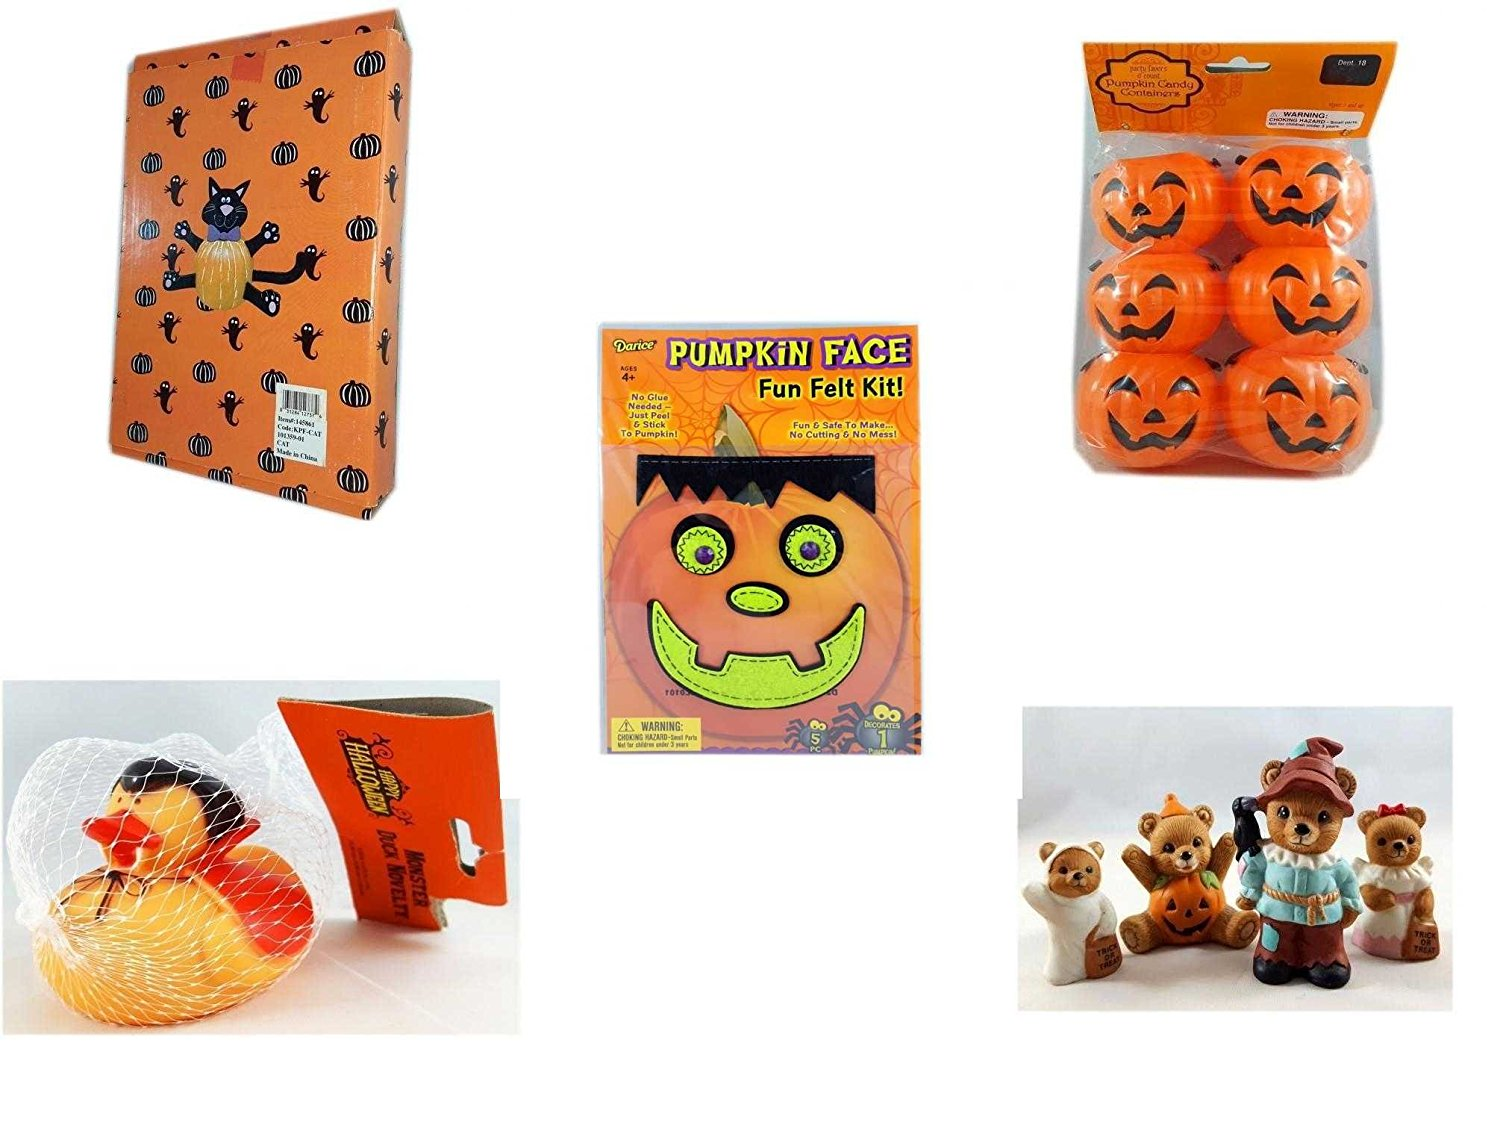 Halloween Fun Gift Bundle [5 piece] - Halloween Cat Pumpkin Push In 5 Piece Head Arms Legs - Party Favors Pumpkin Candy Containers 6 Count - Darice Pumpkin Face Fun Felt Kit - Frankenstein - Happy H